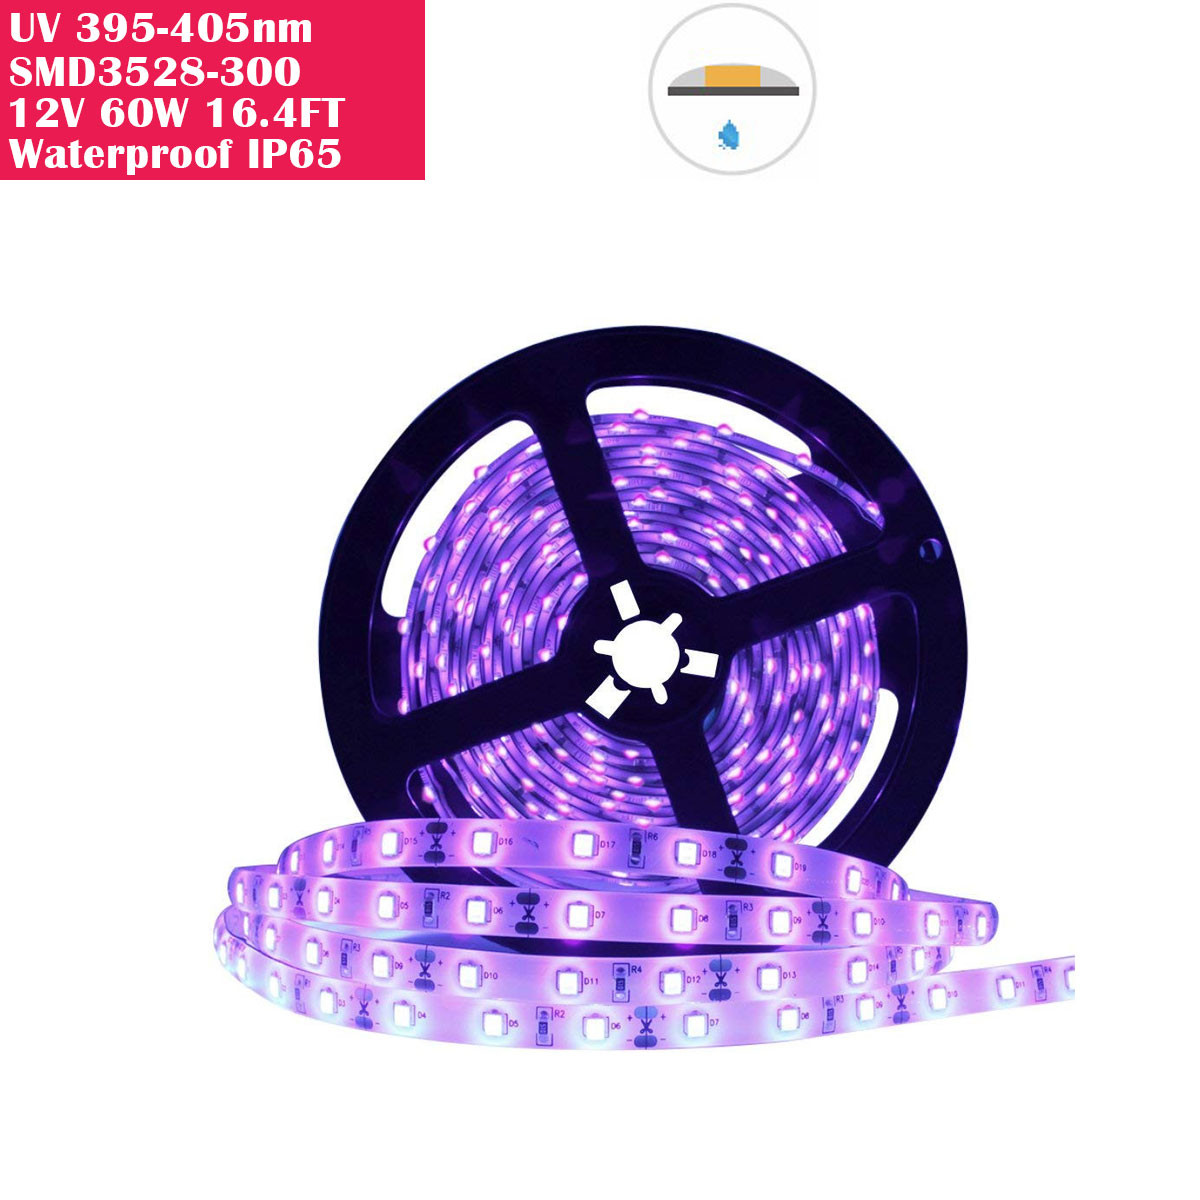 60 Watts UV Black Light LED Strip, 16.4FT/5M 3528 600LEDs 395nm-405nm Waterproof IP65 Blacklight Night Fishing Sterilization implicitly Party with 12V 5A Power Supply